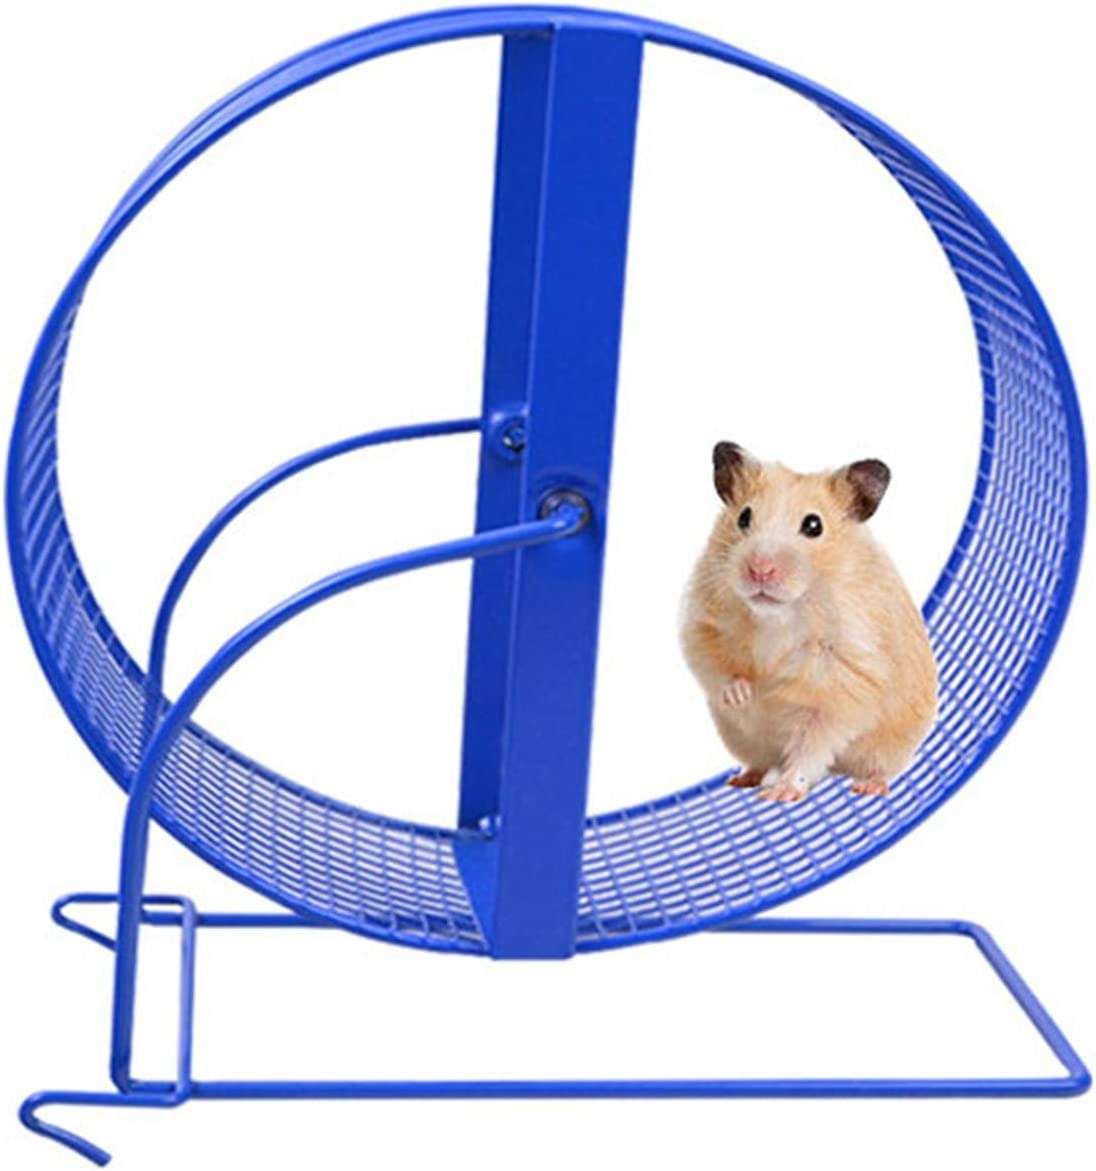 Color : Blue, Size : 14cm ZDAMN Hamster Wheel Pet ProductsHamster Gerbil Wheel Toy For Animals Small Pet Tread Exercise Wheel Pets Exercise Wheel